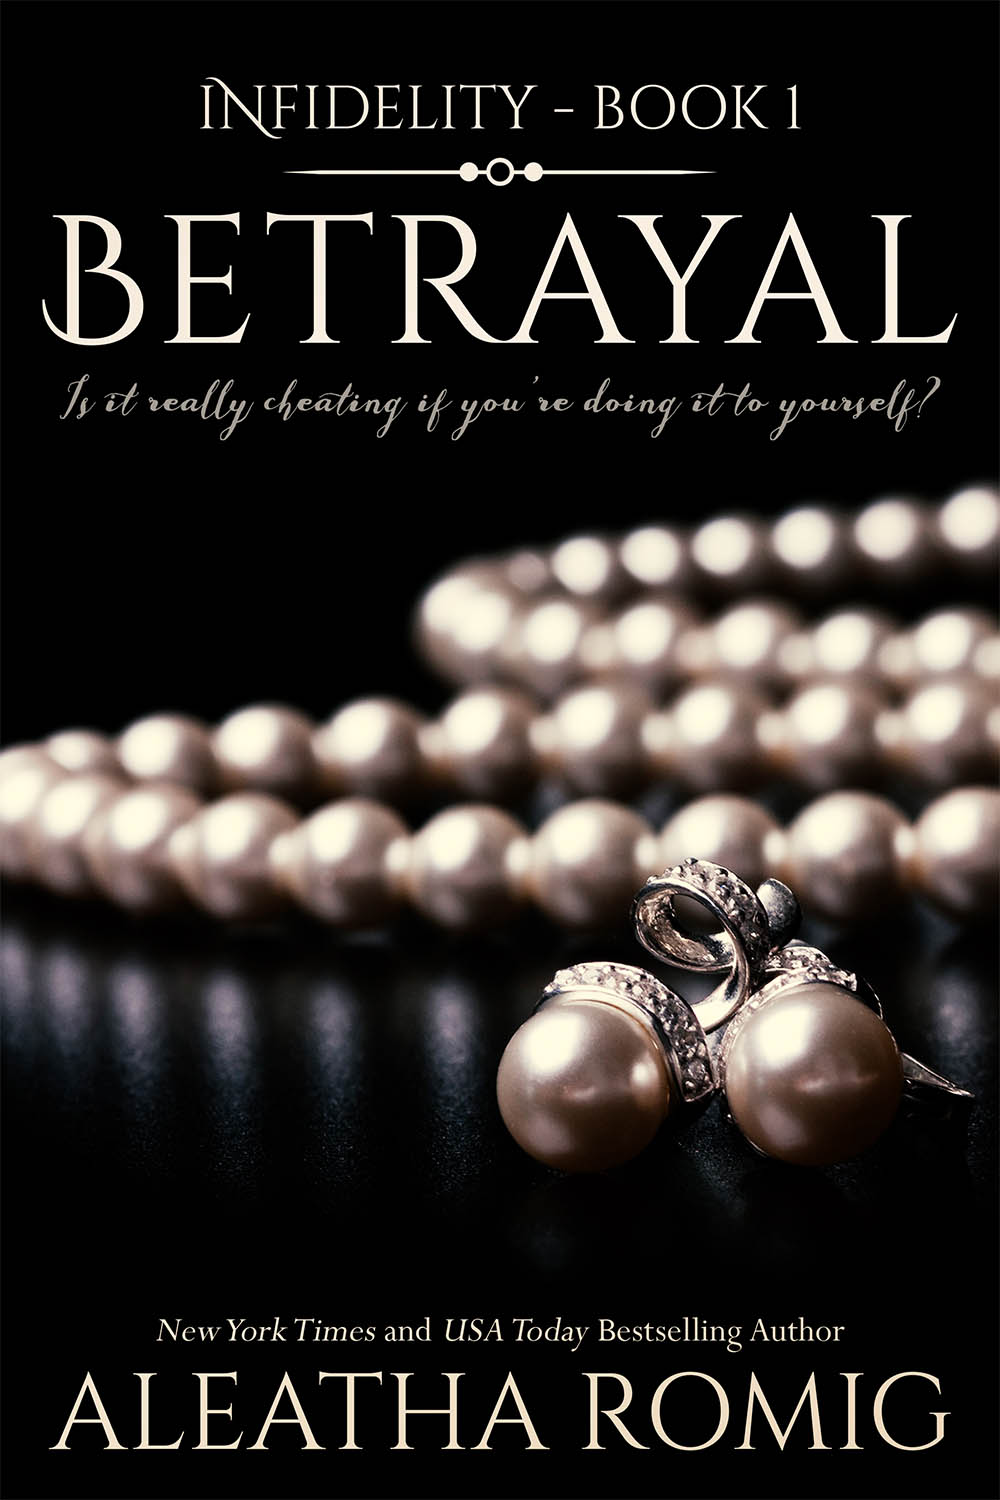 BK1-Betrayal-E-Book-Cover_low